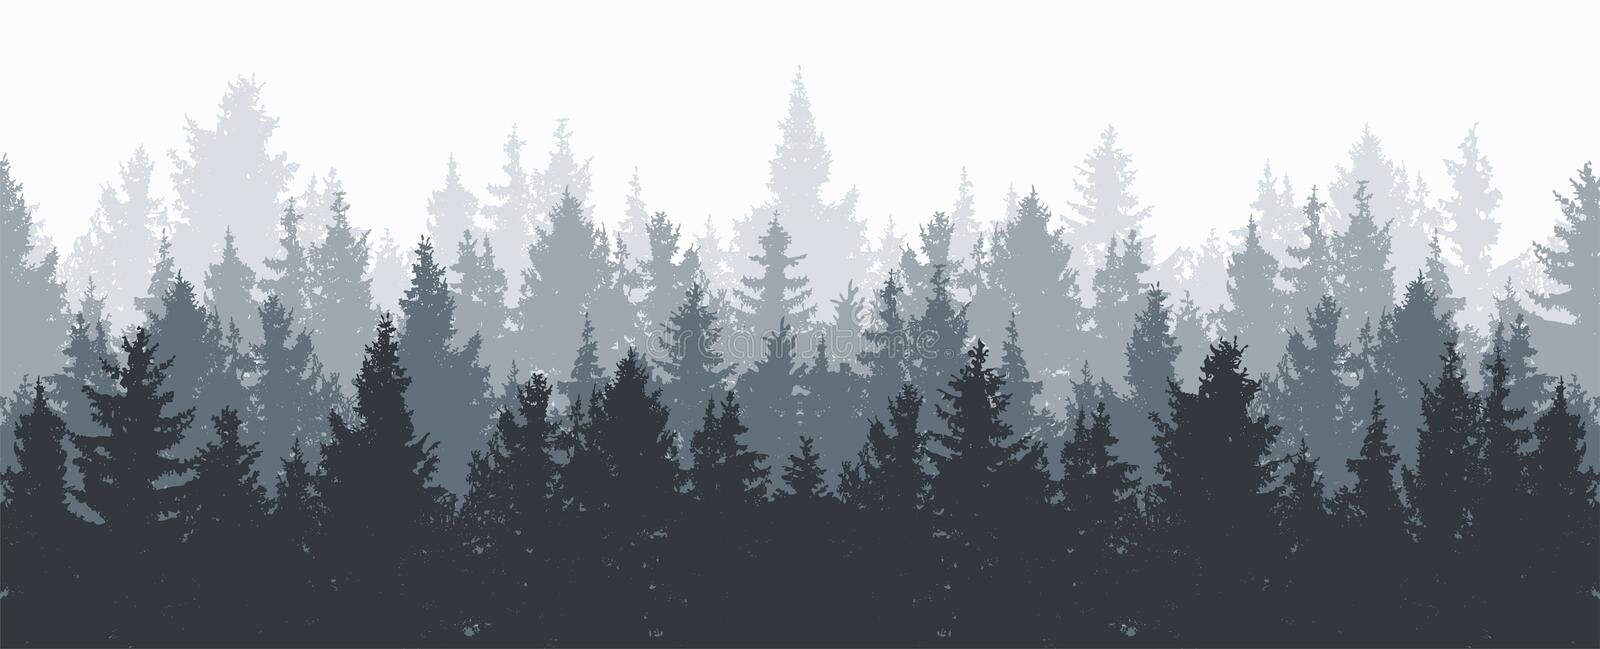 Fond de forêt illustration stock